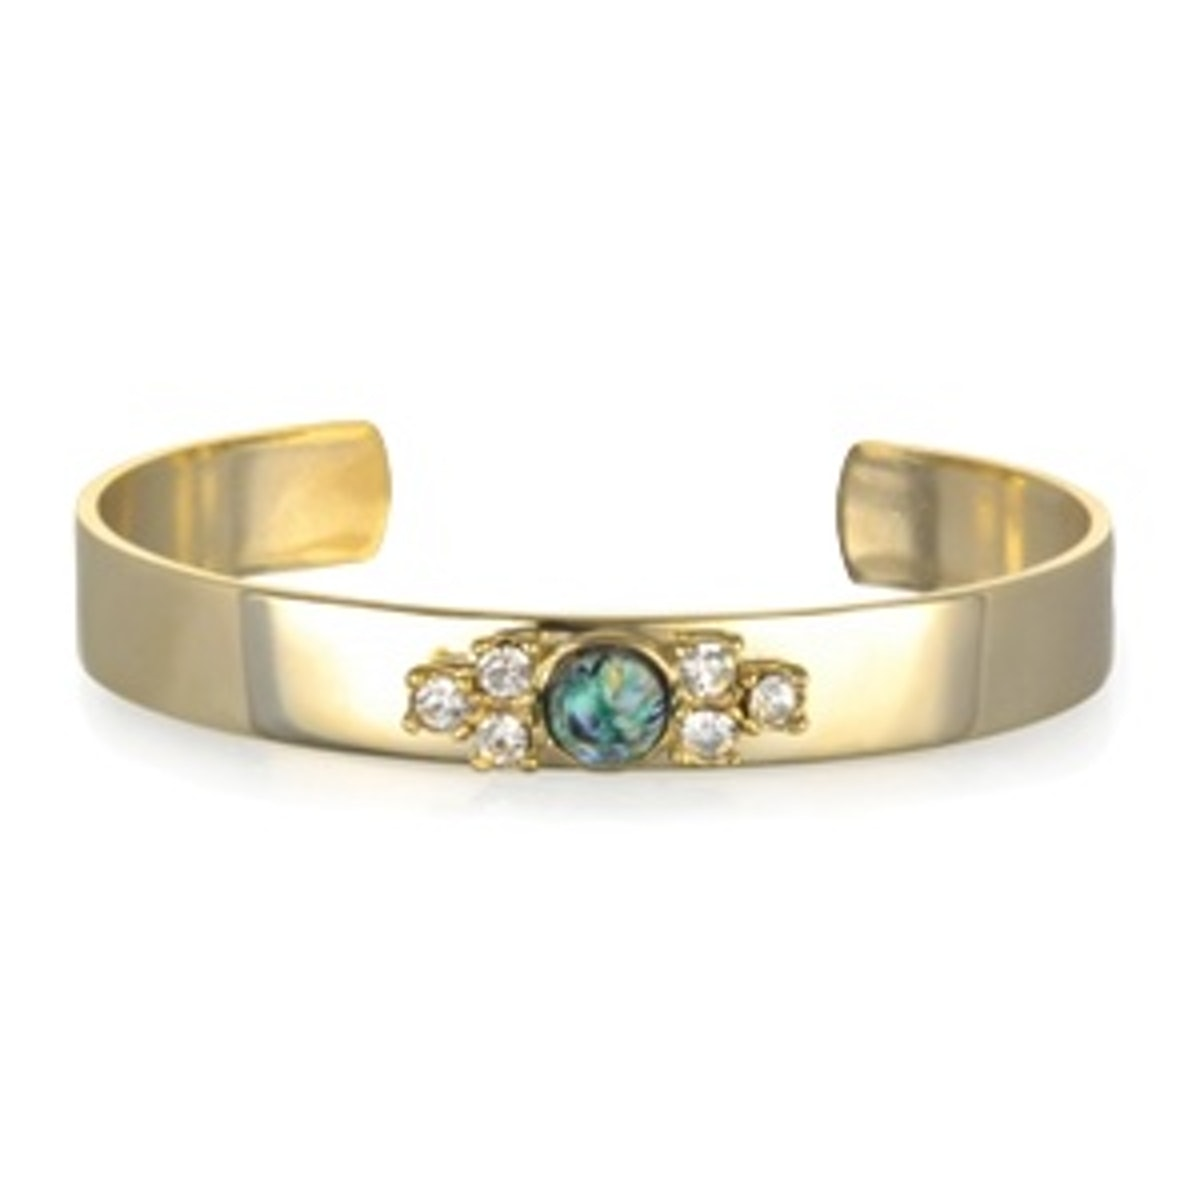 Green Opal And Crystal Cuff Bracelet